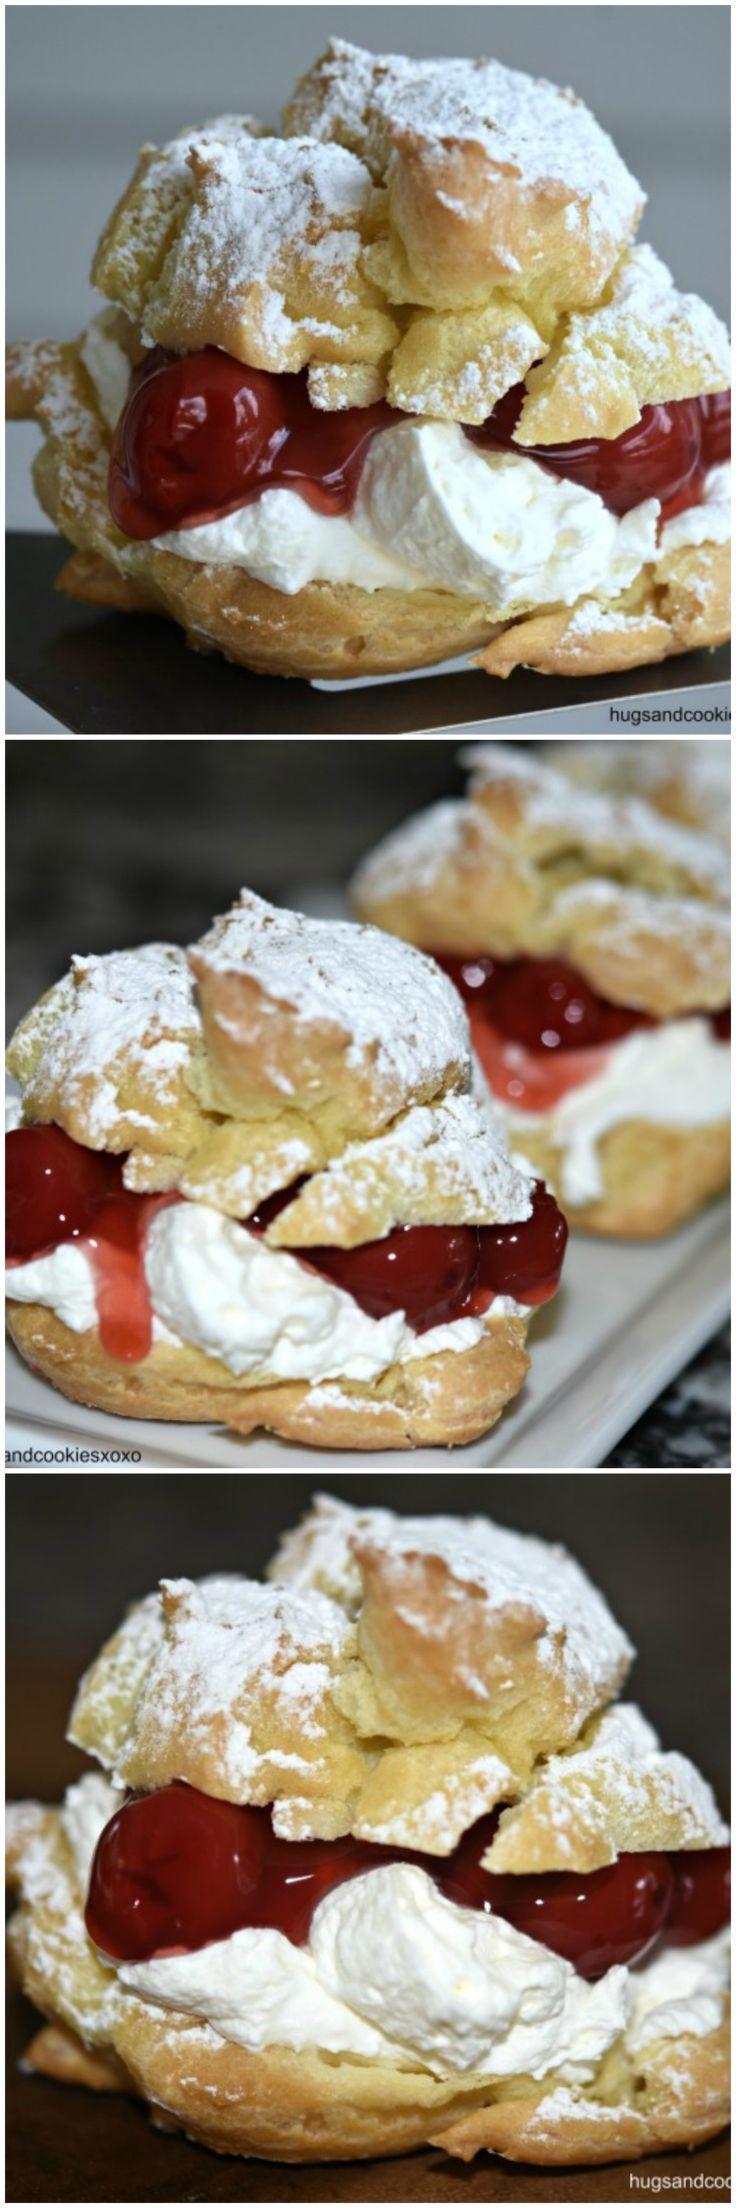 Christmas Cream Puffs with Cherries and Mascarpone Whipped Cream